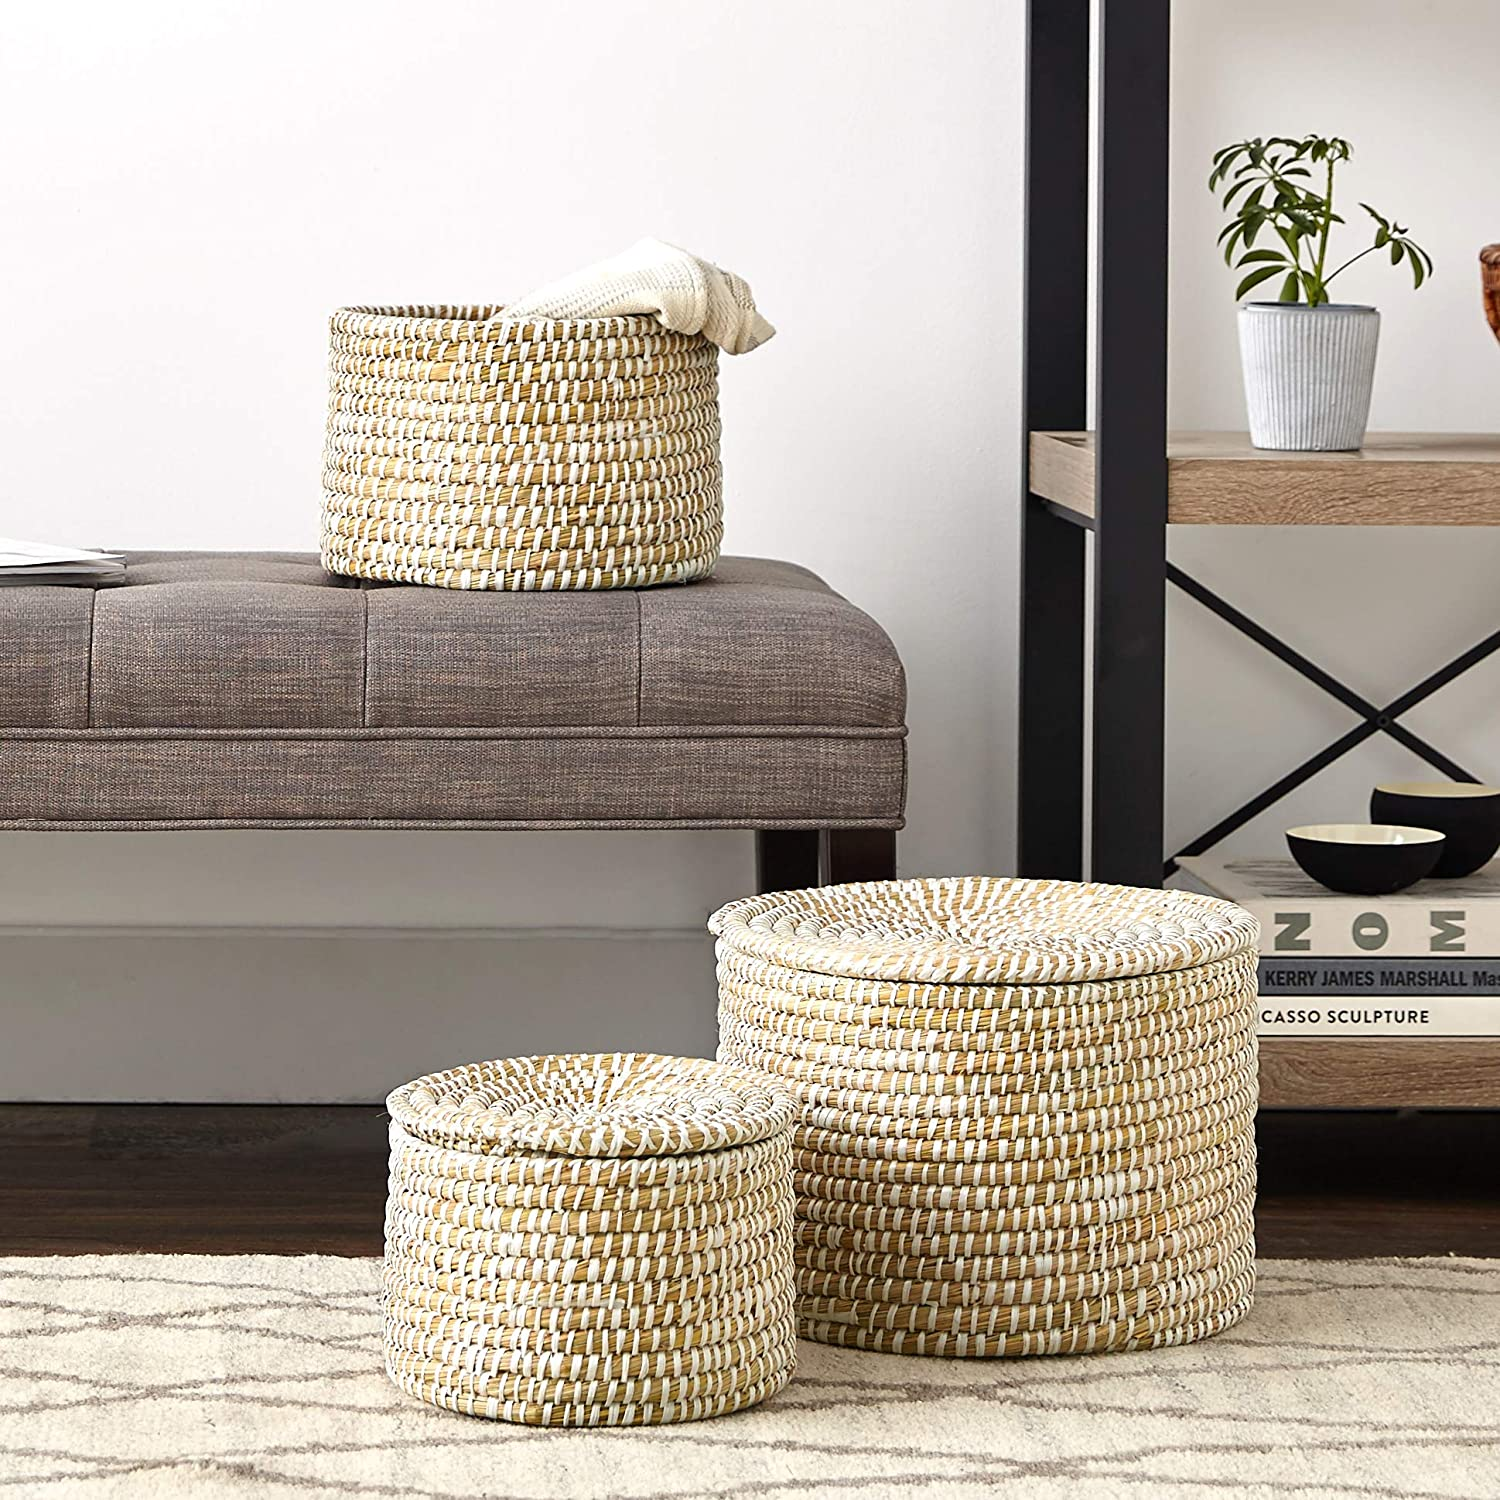 Seagrass basket set for coastal style decor and farmhouse style interiors.